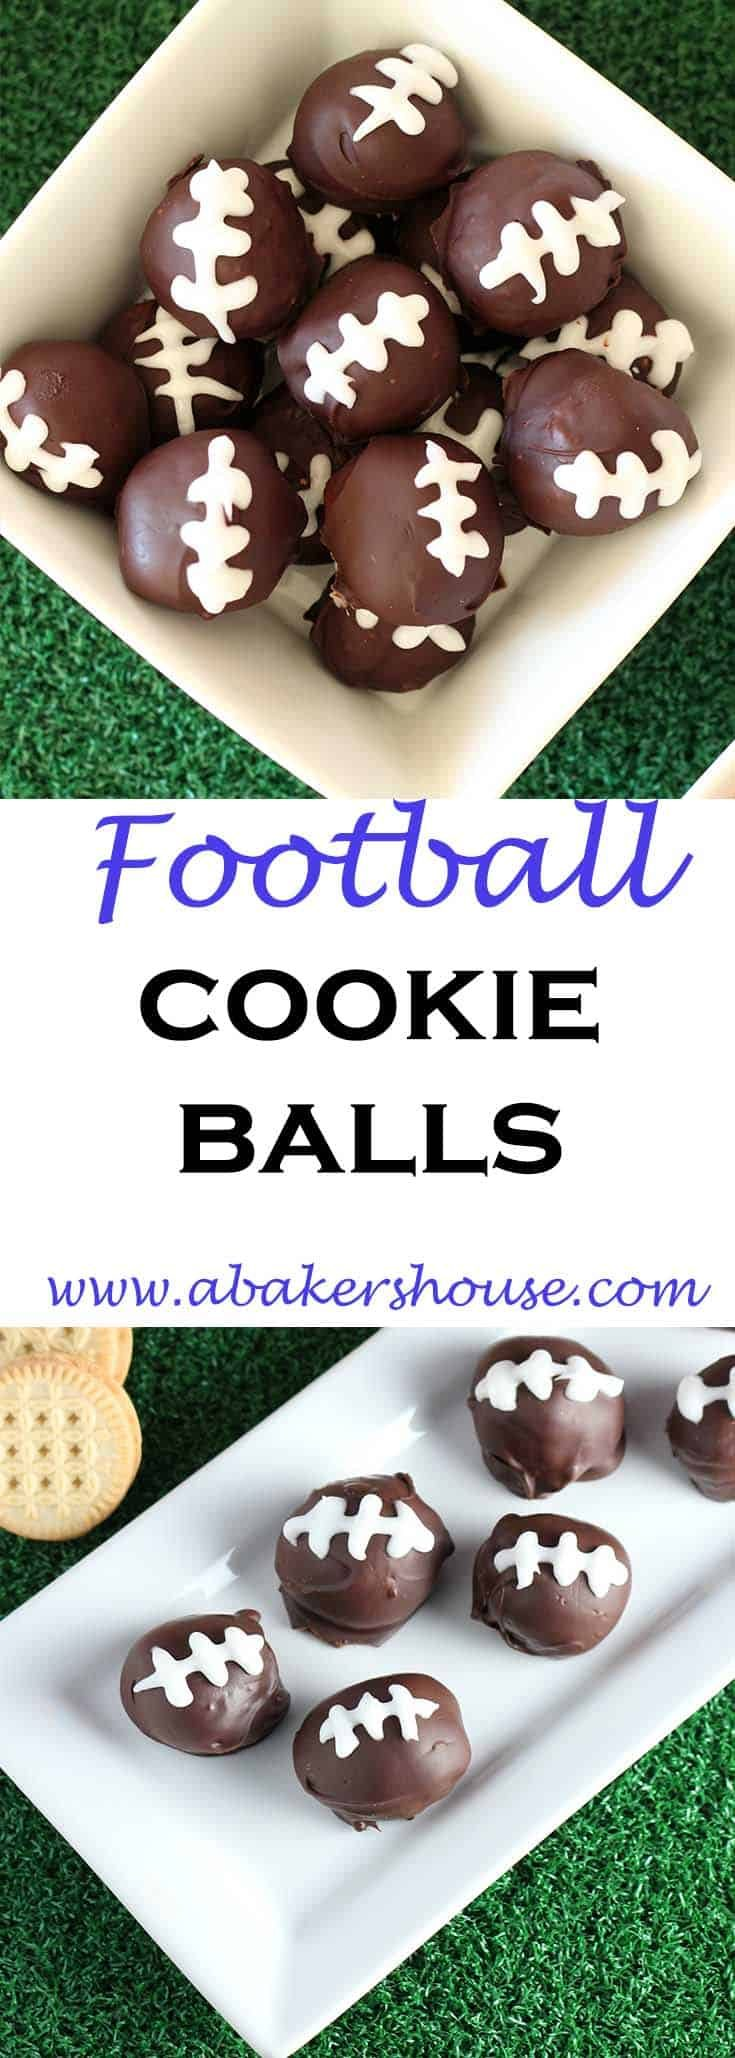 Get ready for some Super Bowl football with these decorated Football Cookie Balls. Cookies are processed into crumbs then added to cream cheese and powdered sugar to form a dough. Dip balls of dough into chocolate and decorate like footballs for the big game! #sponsored #sprouts #abakershouse #superbowl #football #cookieballs